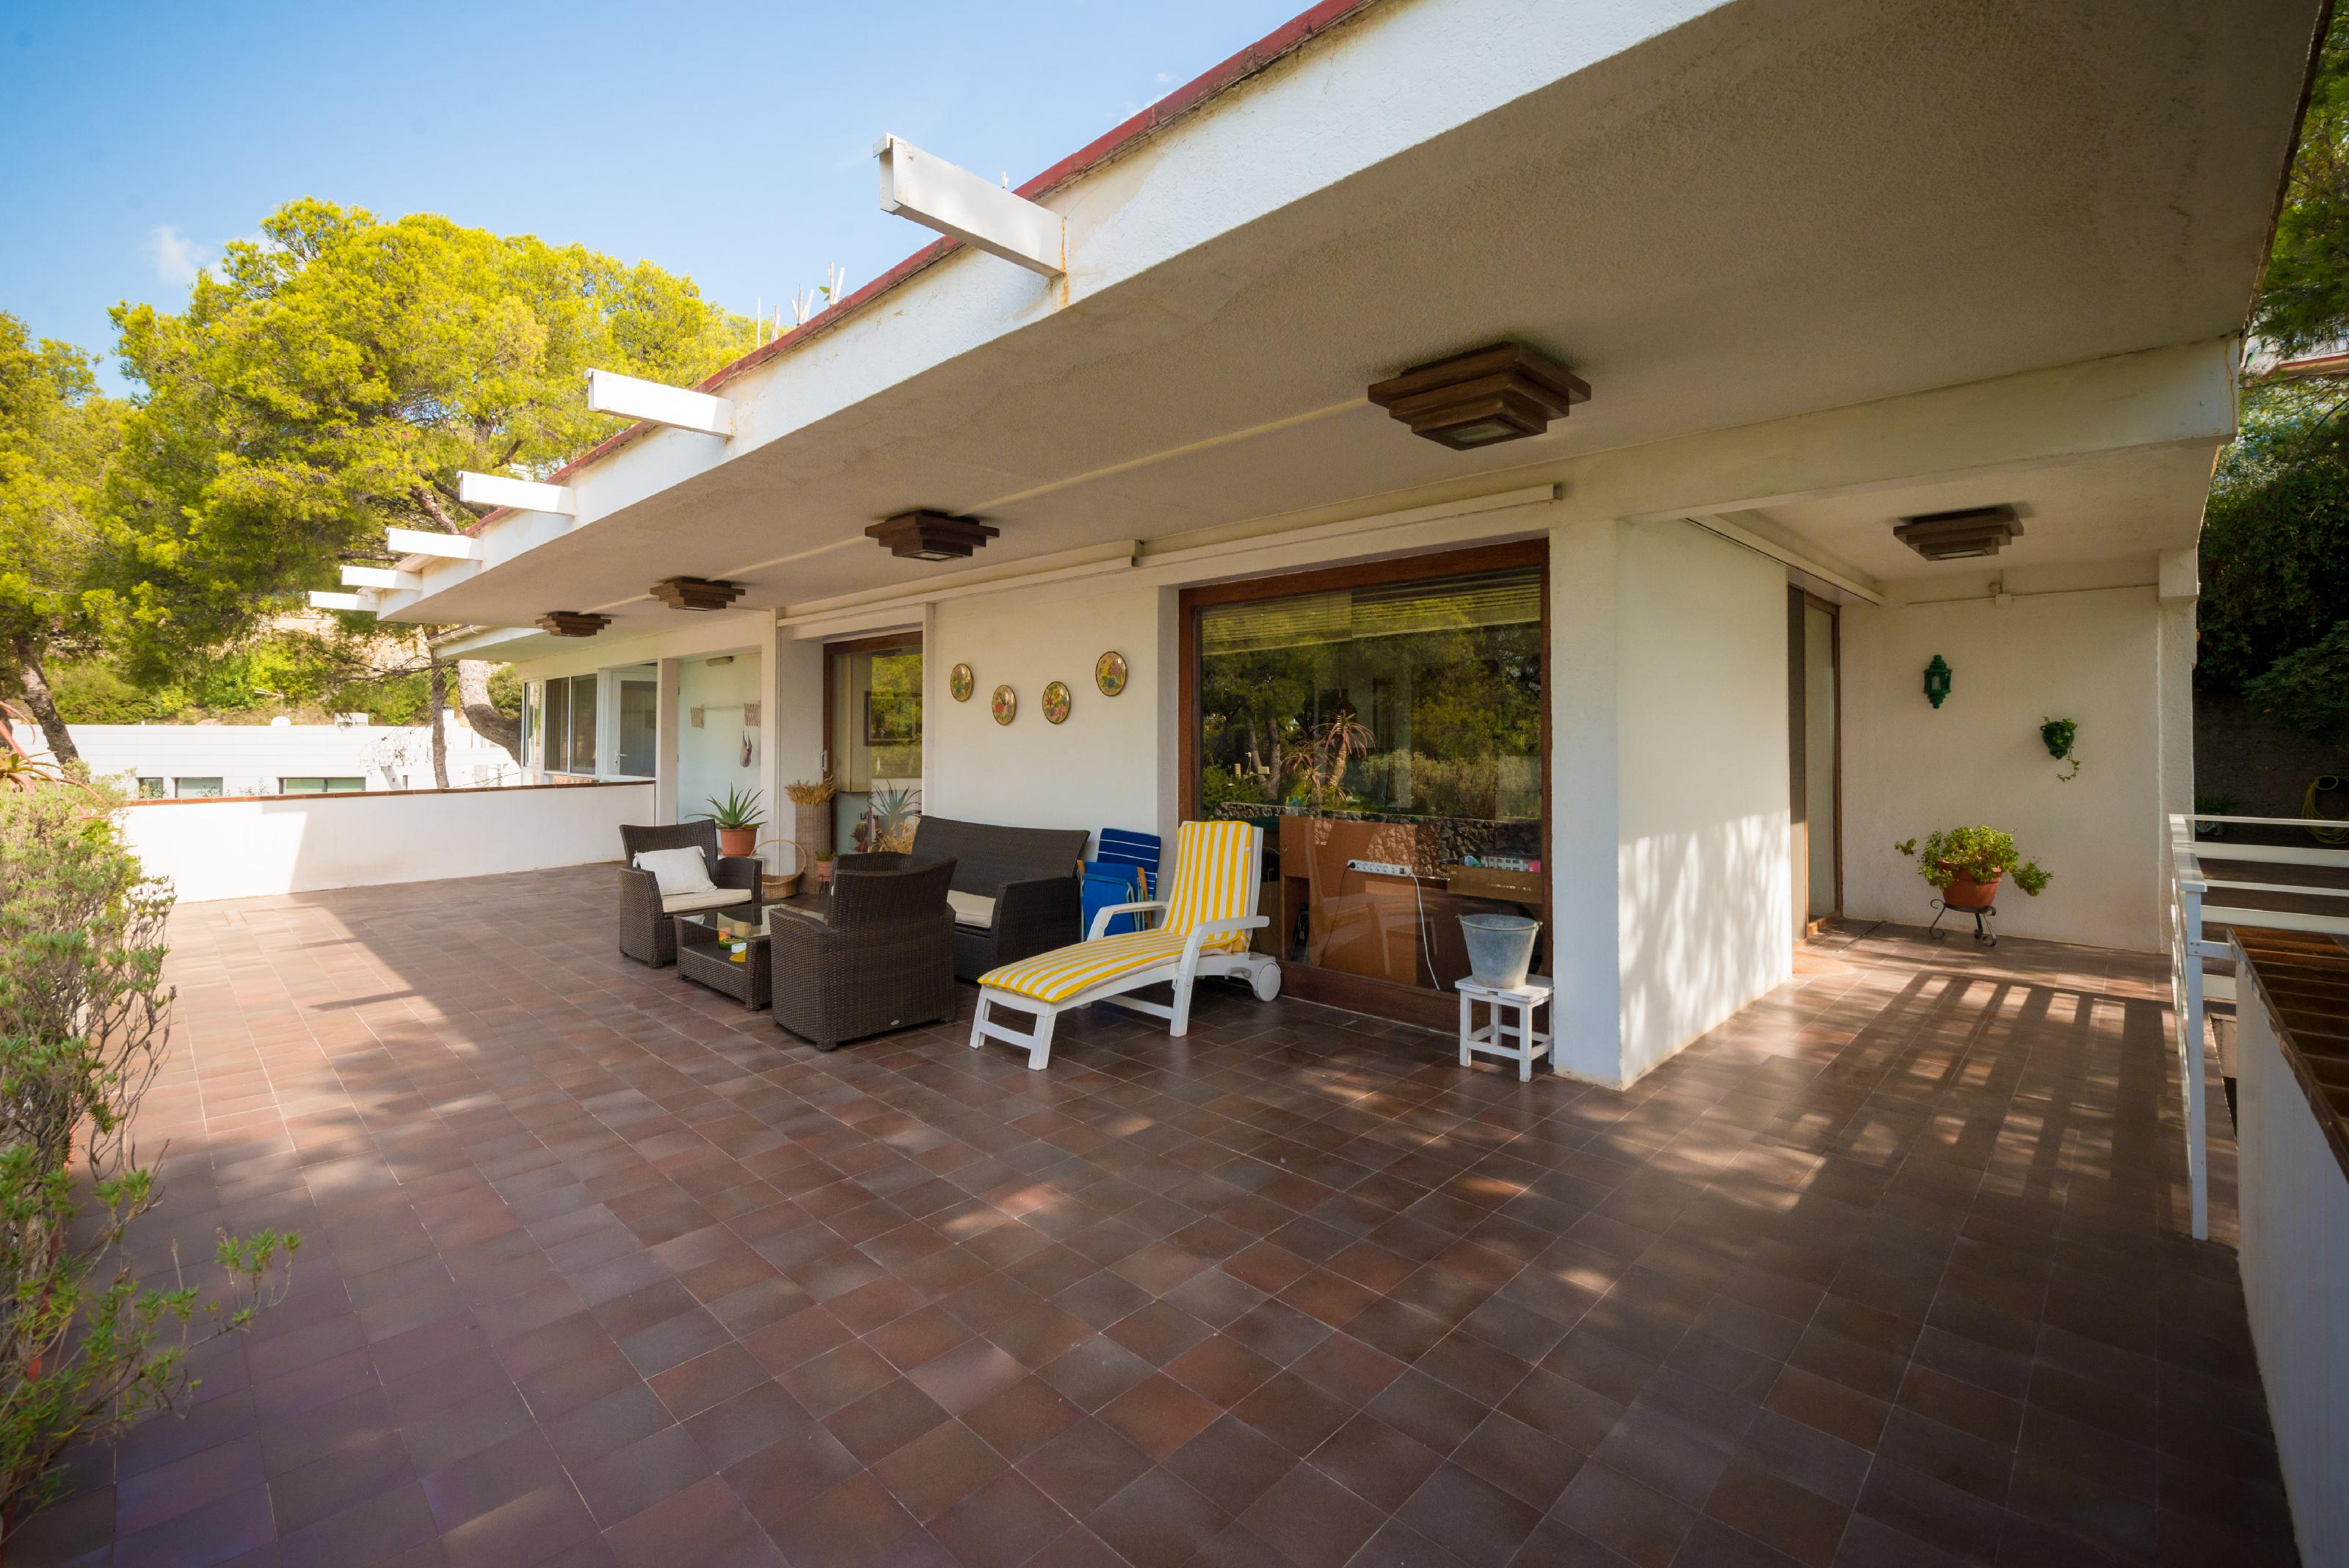 253501 Detached House for sale in Bellamar 9